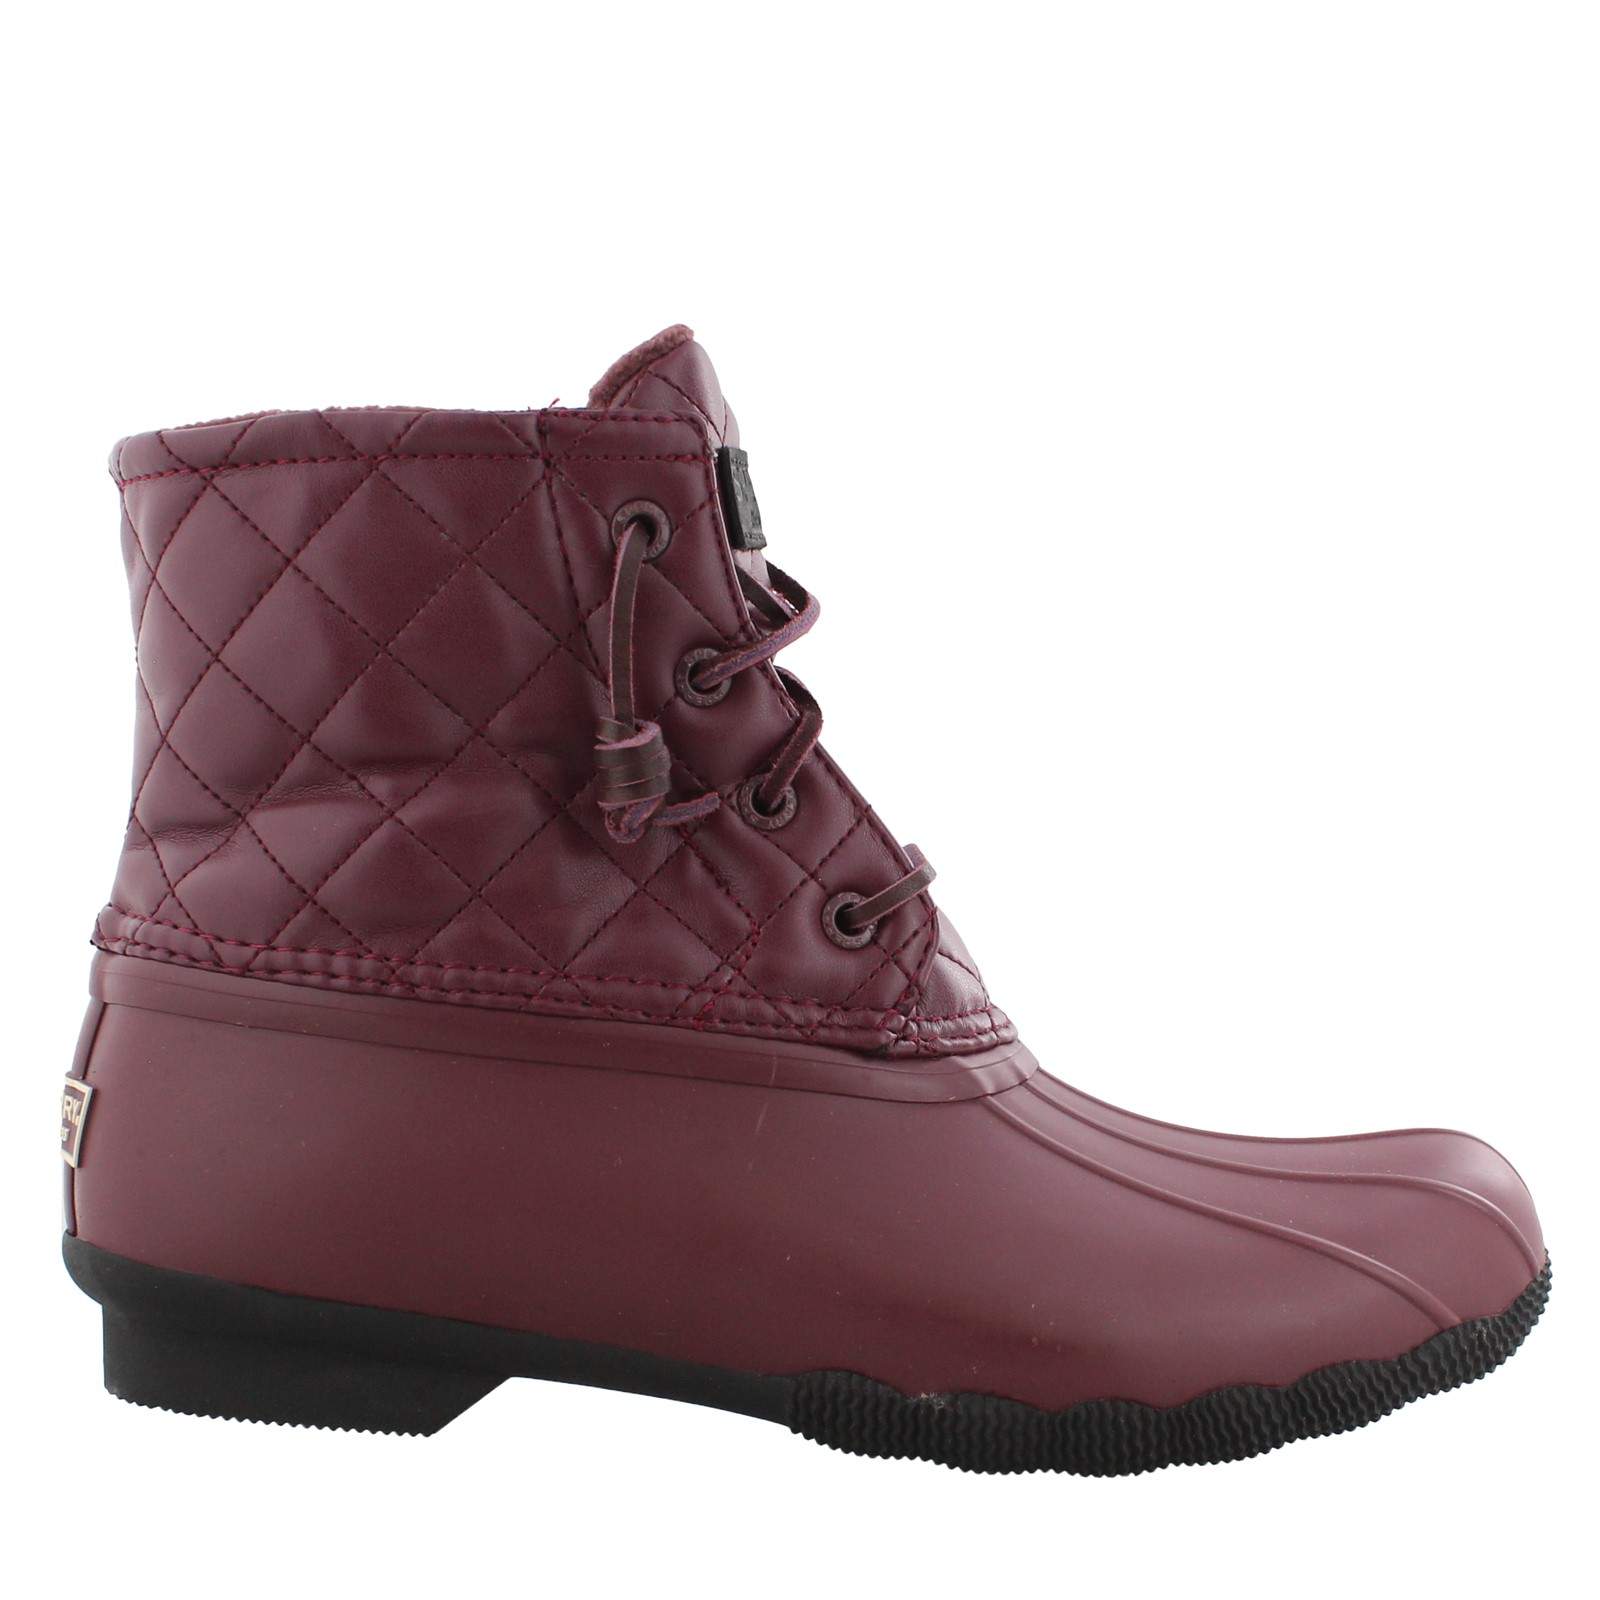 Women's Sperry, Saltwater Quilted Luxe Duck Boots